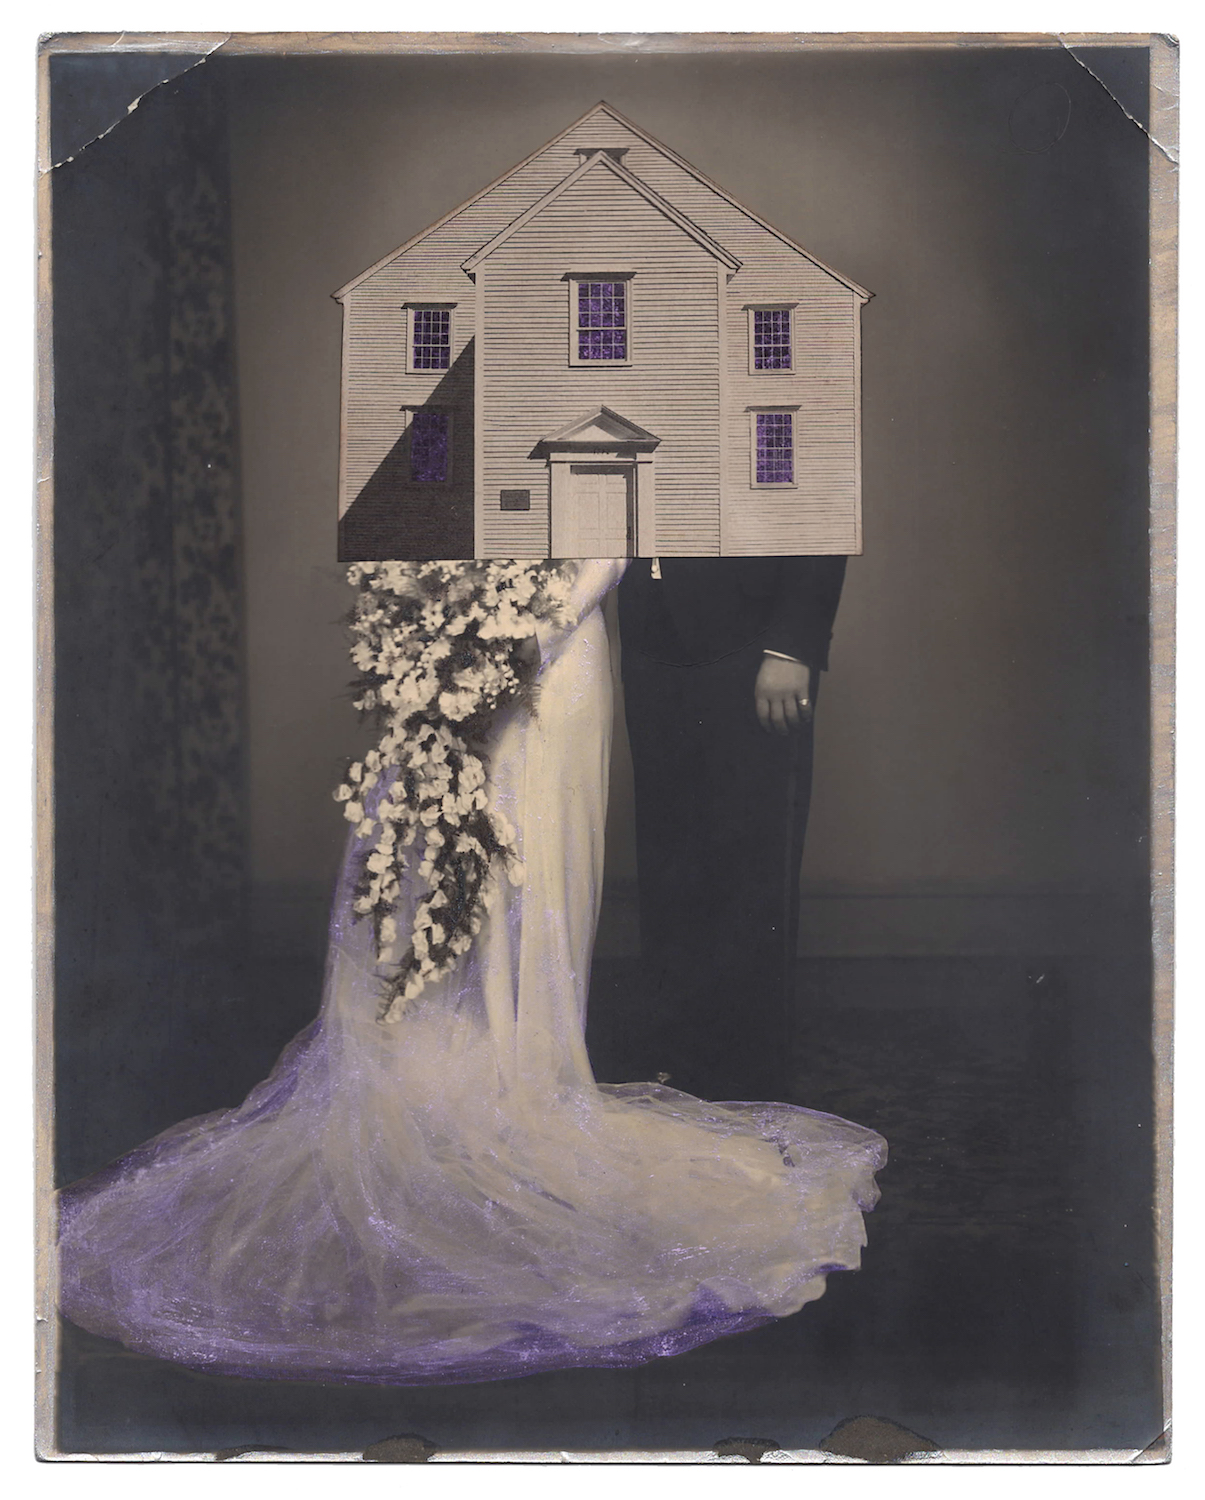 Wedding 7, 2016,Found Photographs, Collage, & Acrylic, 10 x 8 inches